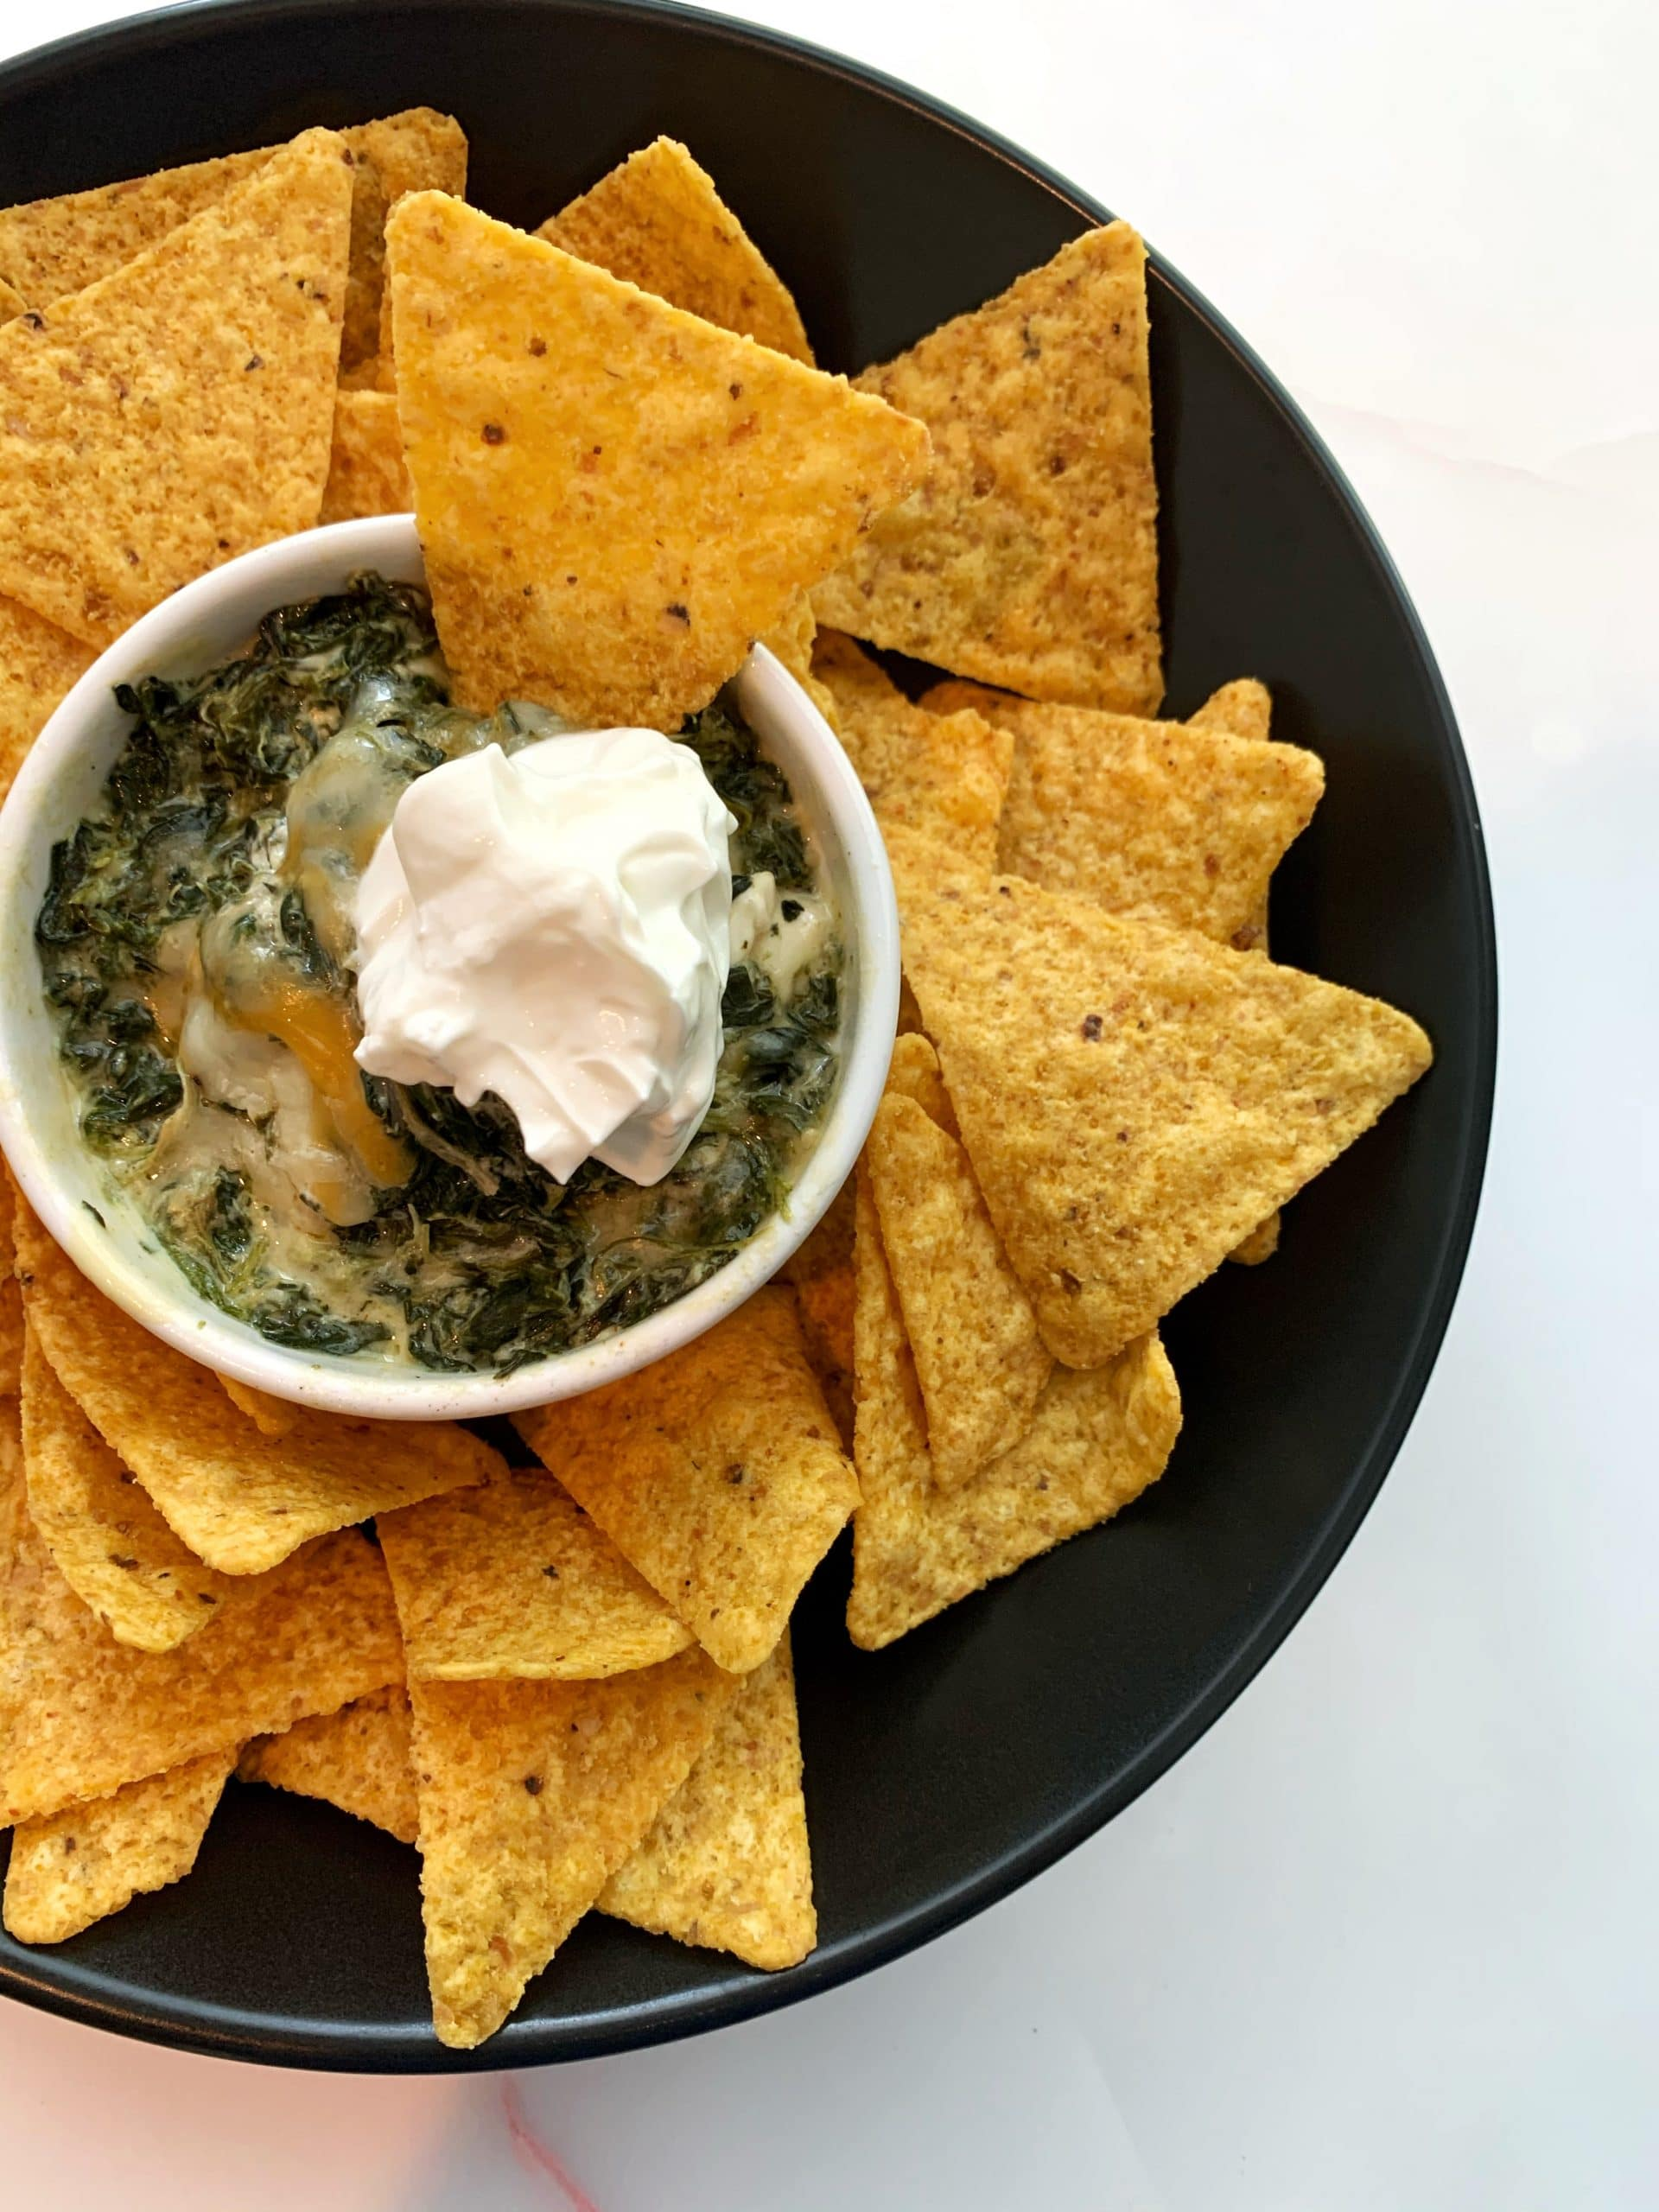 homemade spinach dip in a white bowl surrounded by tortilla chips